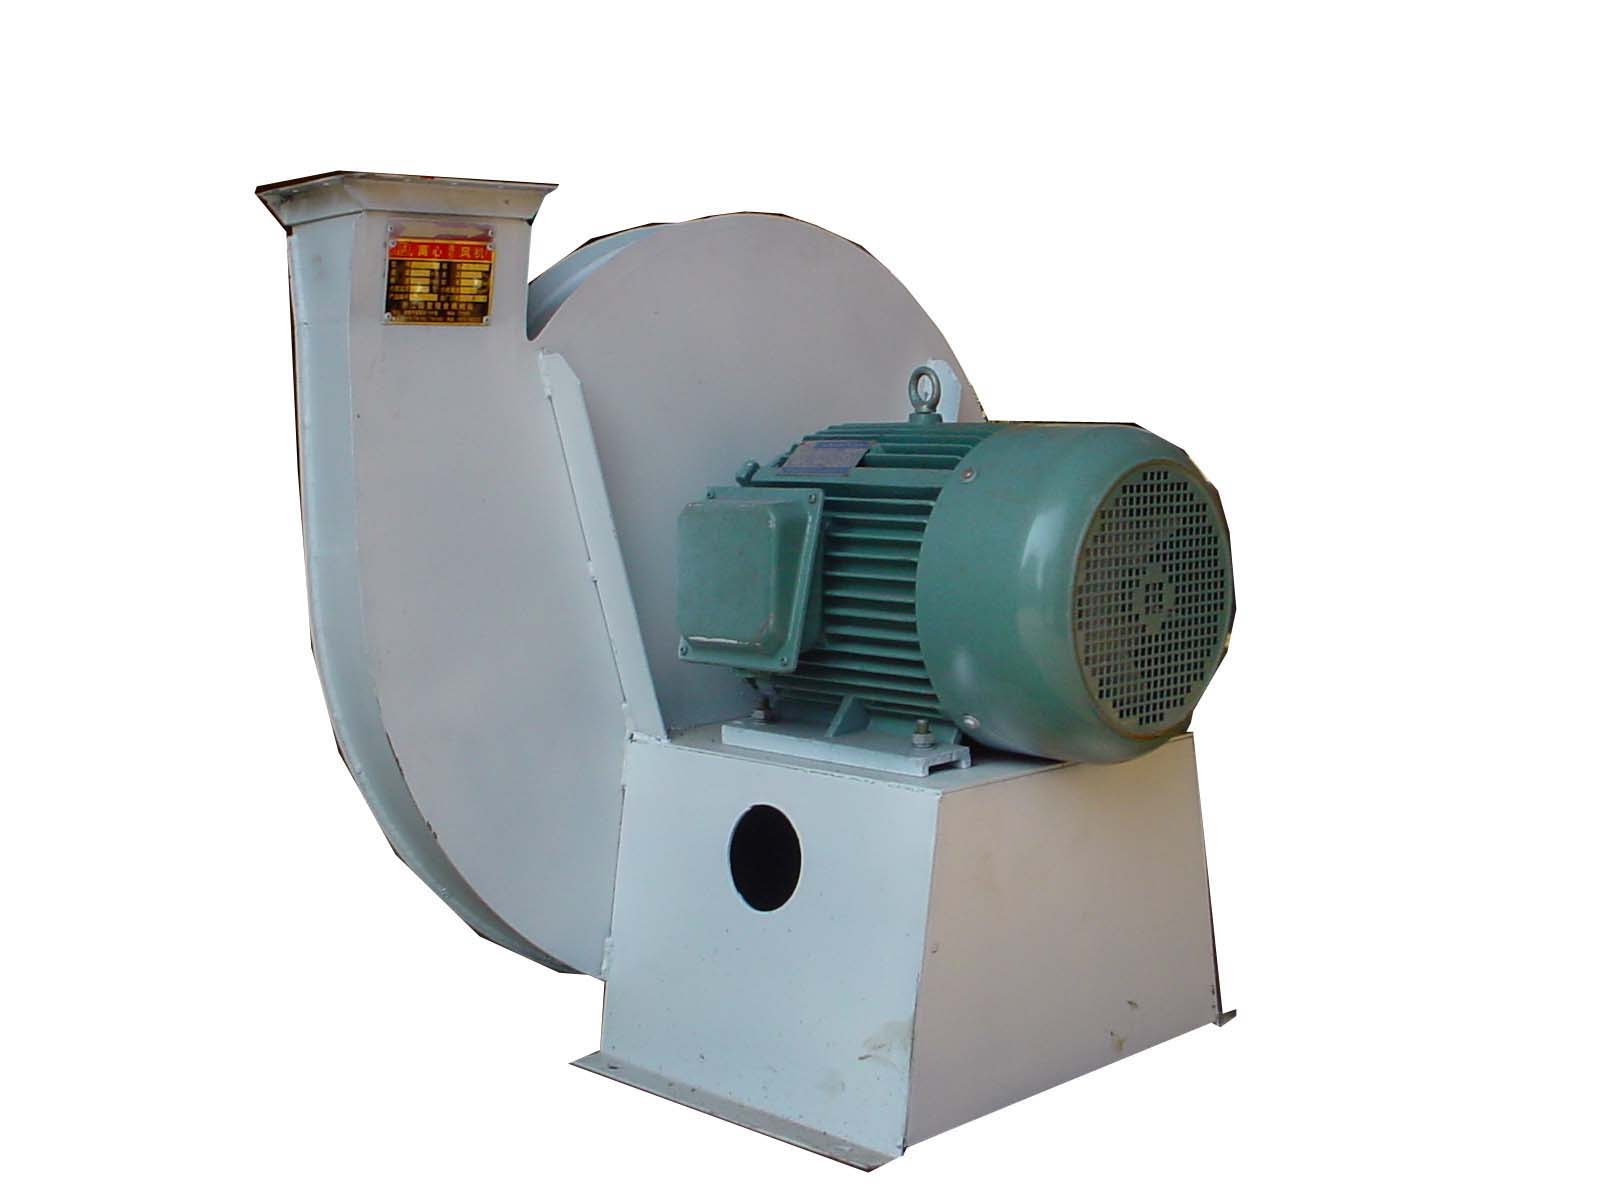 Fans and Industrial Pressure Blowers High Efficient Centrifugal Fans  #733F24